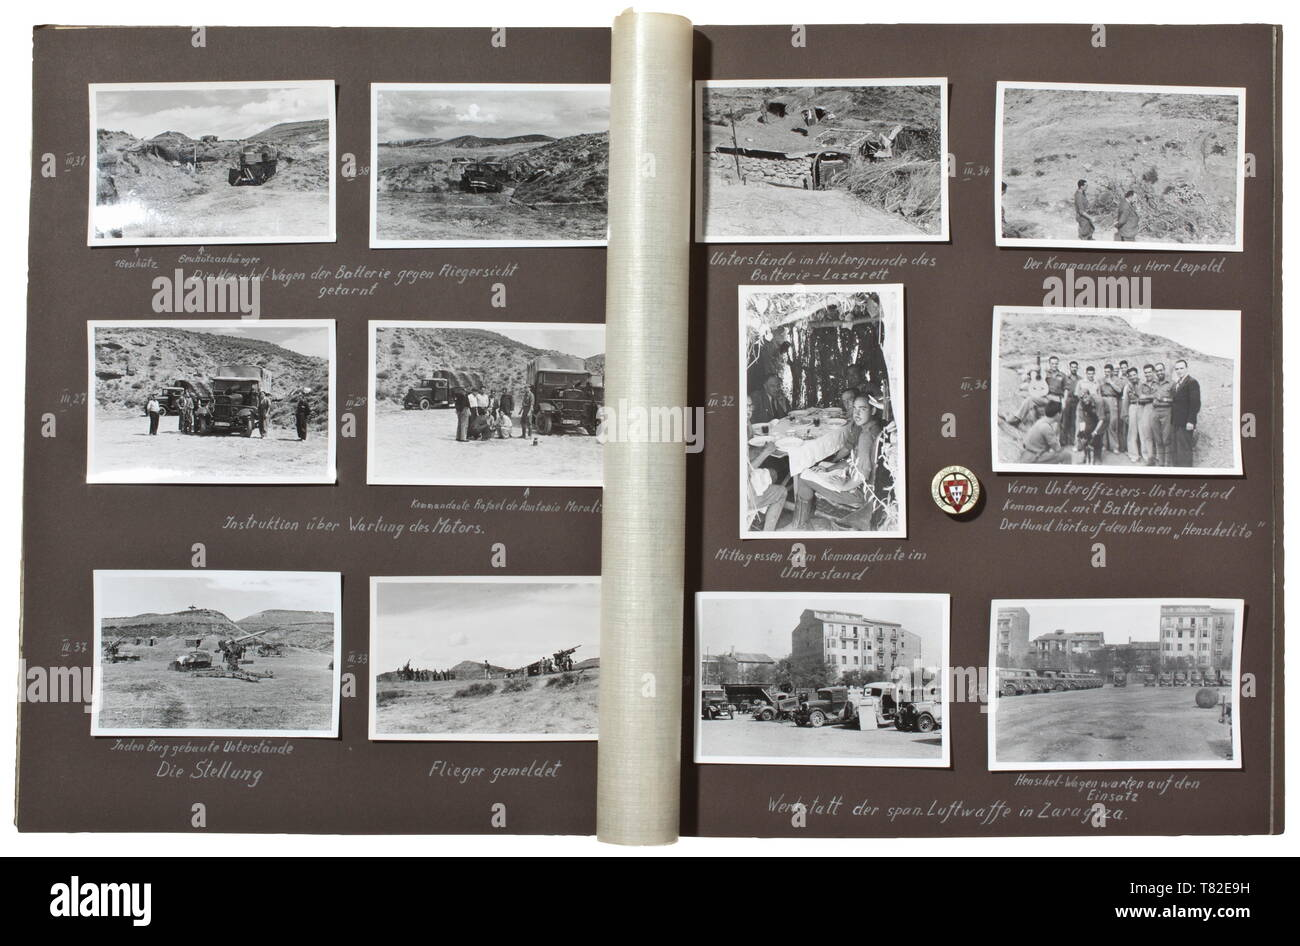 A photo album on the Spanish Civil War (1936 - 39) - Legion Condor With more than 280 excellent photographs of technical and geographical features. The album with captions, with information given by a regional manager of the truck section for Spain and Portugal of the company Henschel from Kassel. Several pictures of trucks in use, airplanes, Spanish cities (Burgos, Sevilla, Bilbao, Santander, Teruel, Lerida etc.). Also air raid shelters and positions, marching troops, destroyed buildings, fights at the Ebro, Teruel and Cubla fronts. With a pin for Henschel salesmen in Port, Editorial-Use-Only - Stock Image